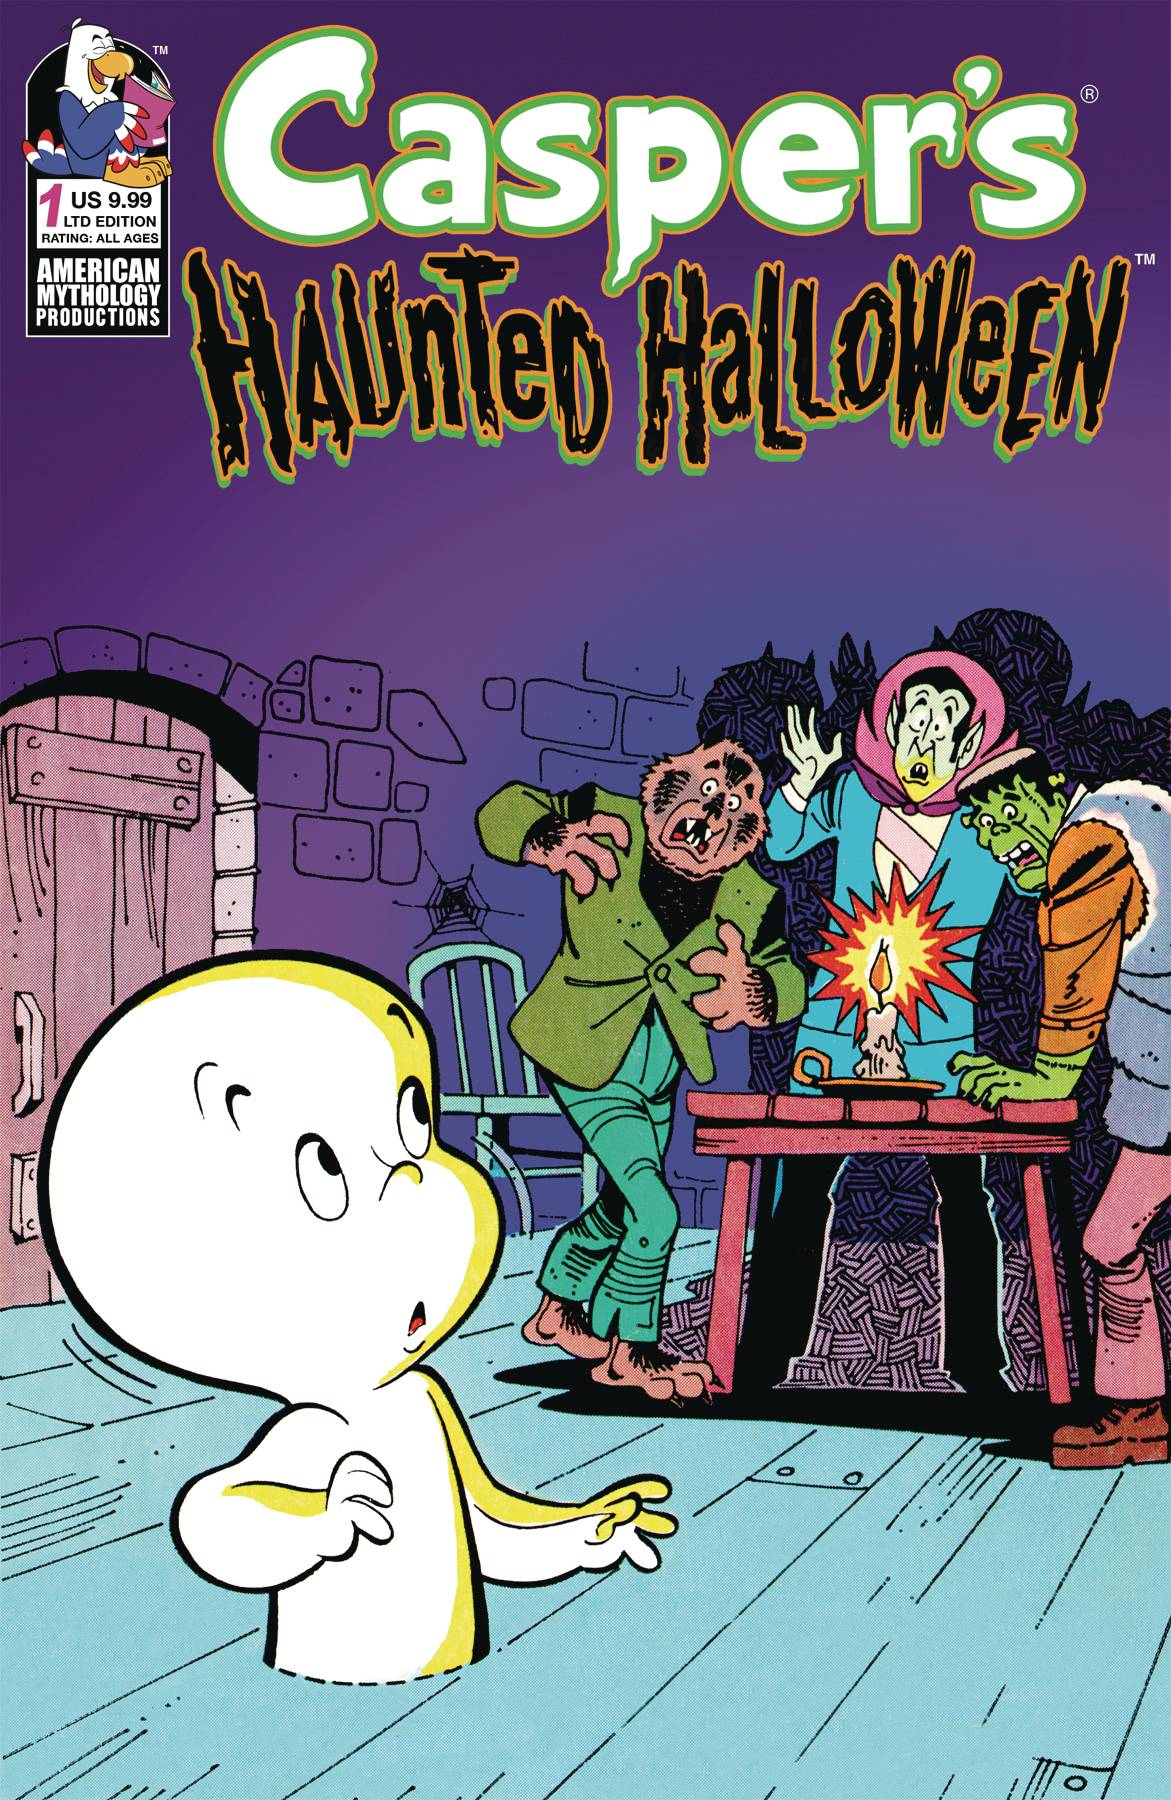 Caspers Haunted Halloween #1 (Limited Edition Retro Animation Cover)